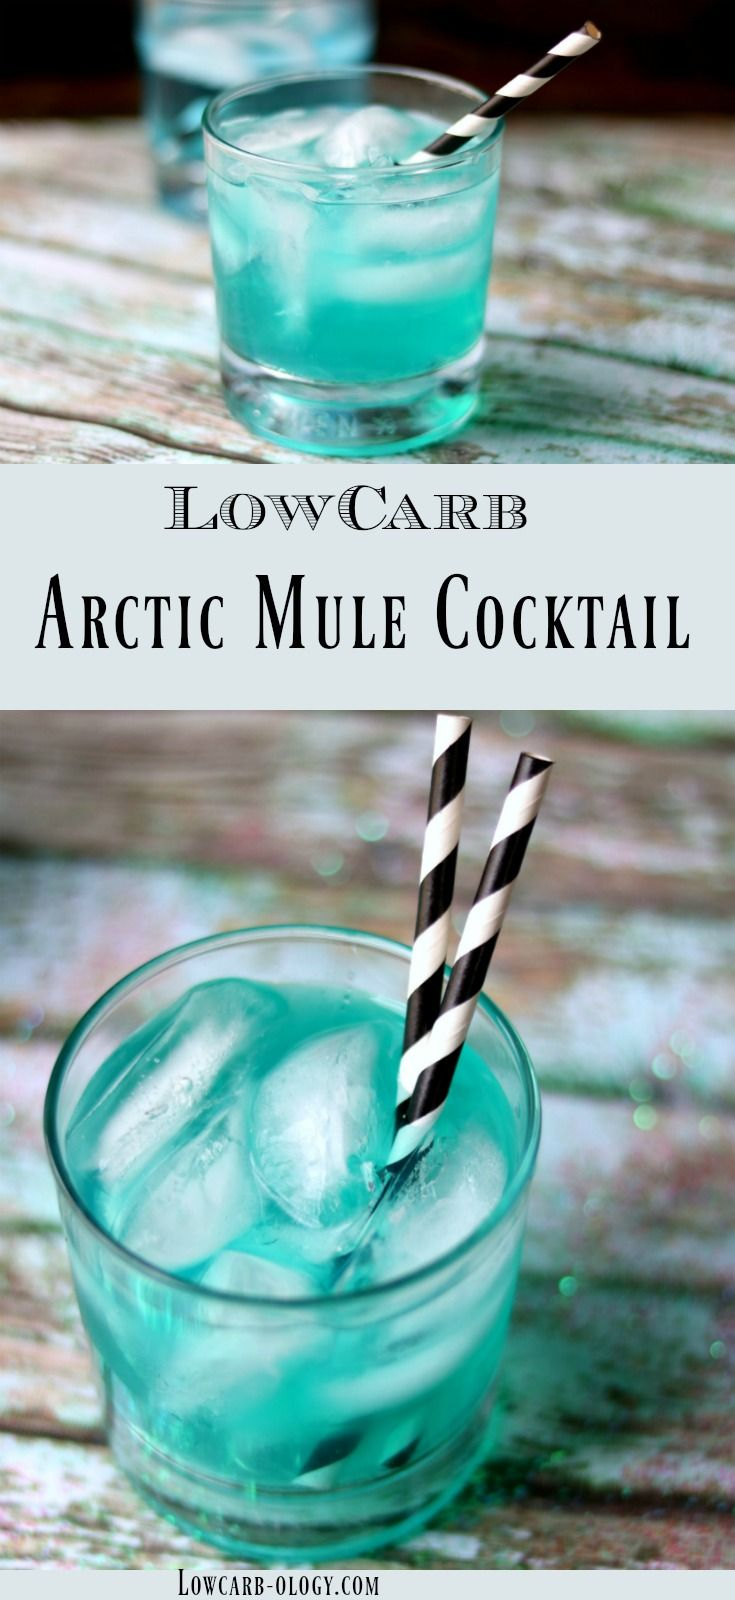 Low carb vodka cocktail recipe that's perfect for winter! This Arctic Mule is exactly what you're looking for! Icy cold vodka is blended with sugar free peppermint syrup so each sip feels like you're breathing the icy arctic air! The blue color just adds to the charm of this delicious Moscow Mule variation with 0 carbs from Lowcarb-ology.com #lowcarb #lowcarbcocktailrecipes #vodkacocktails